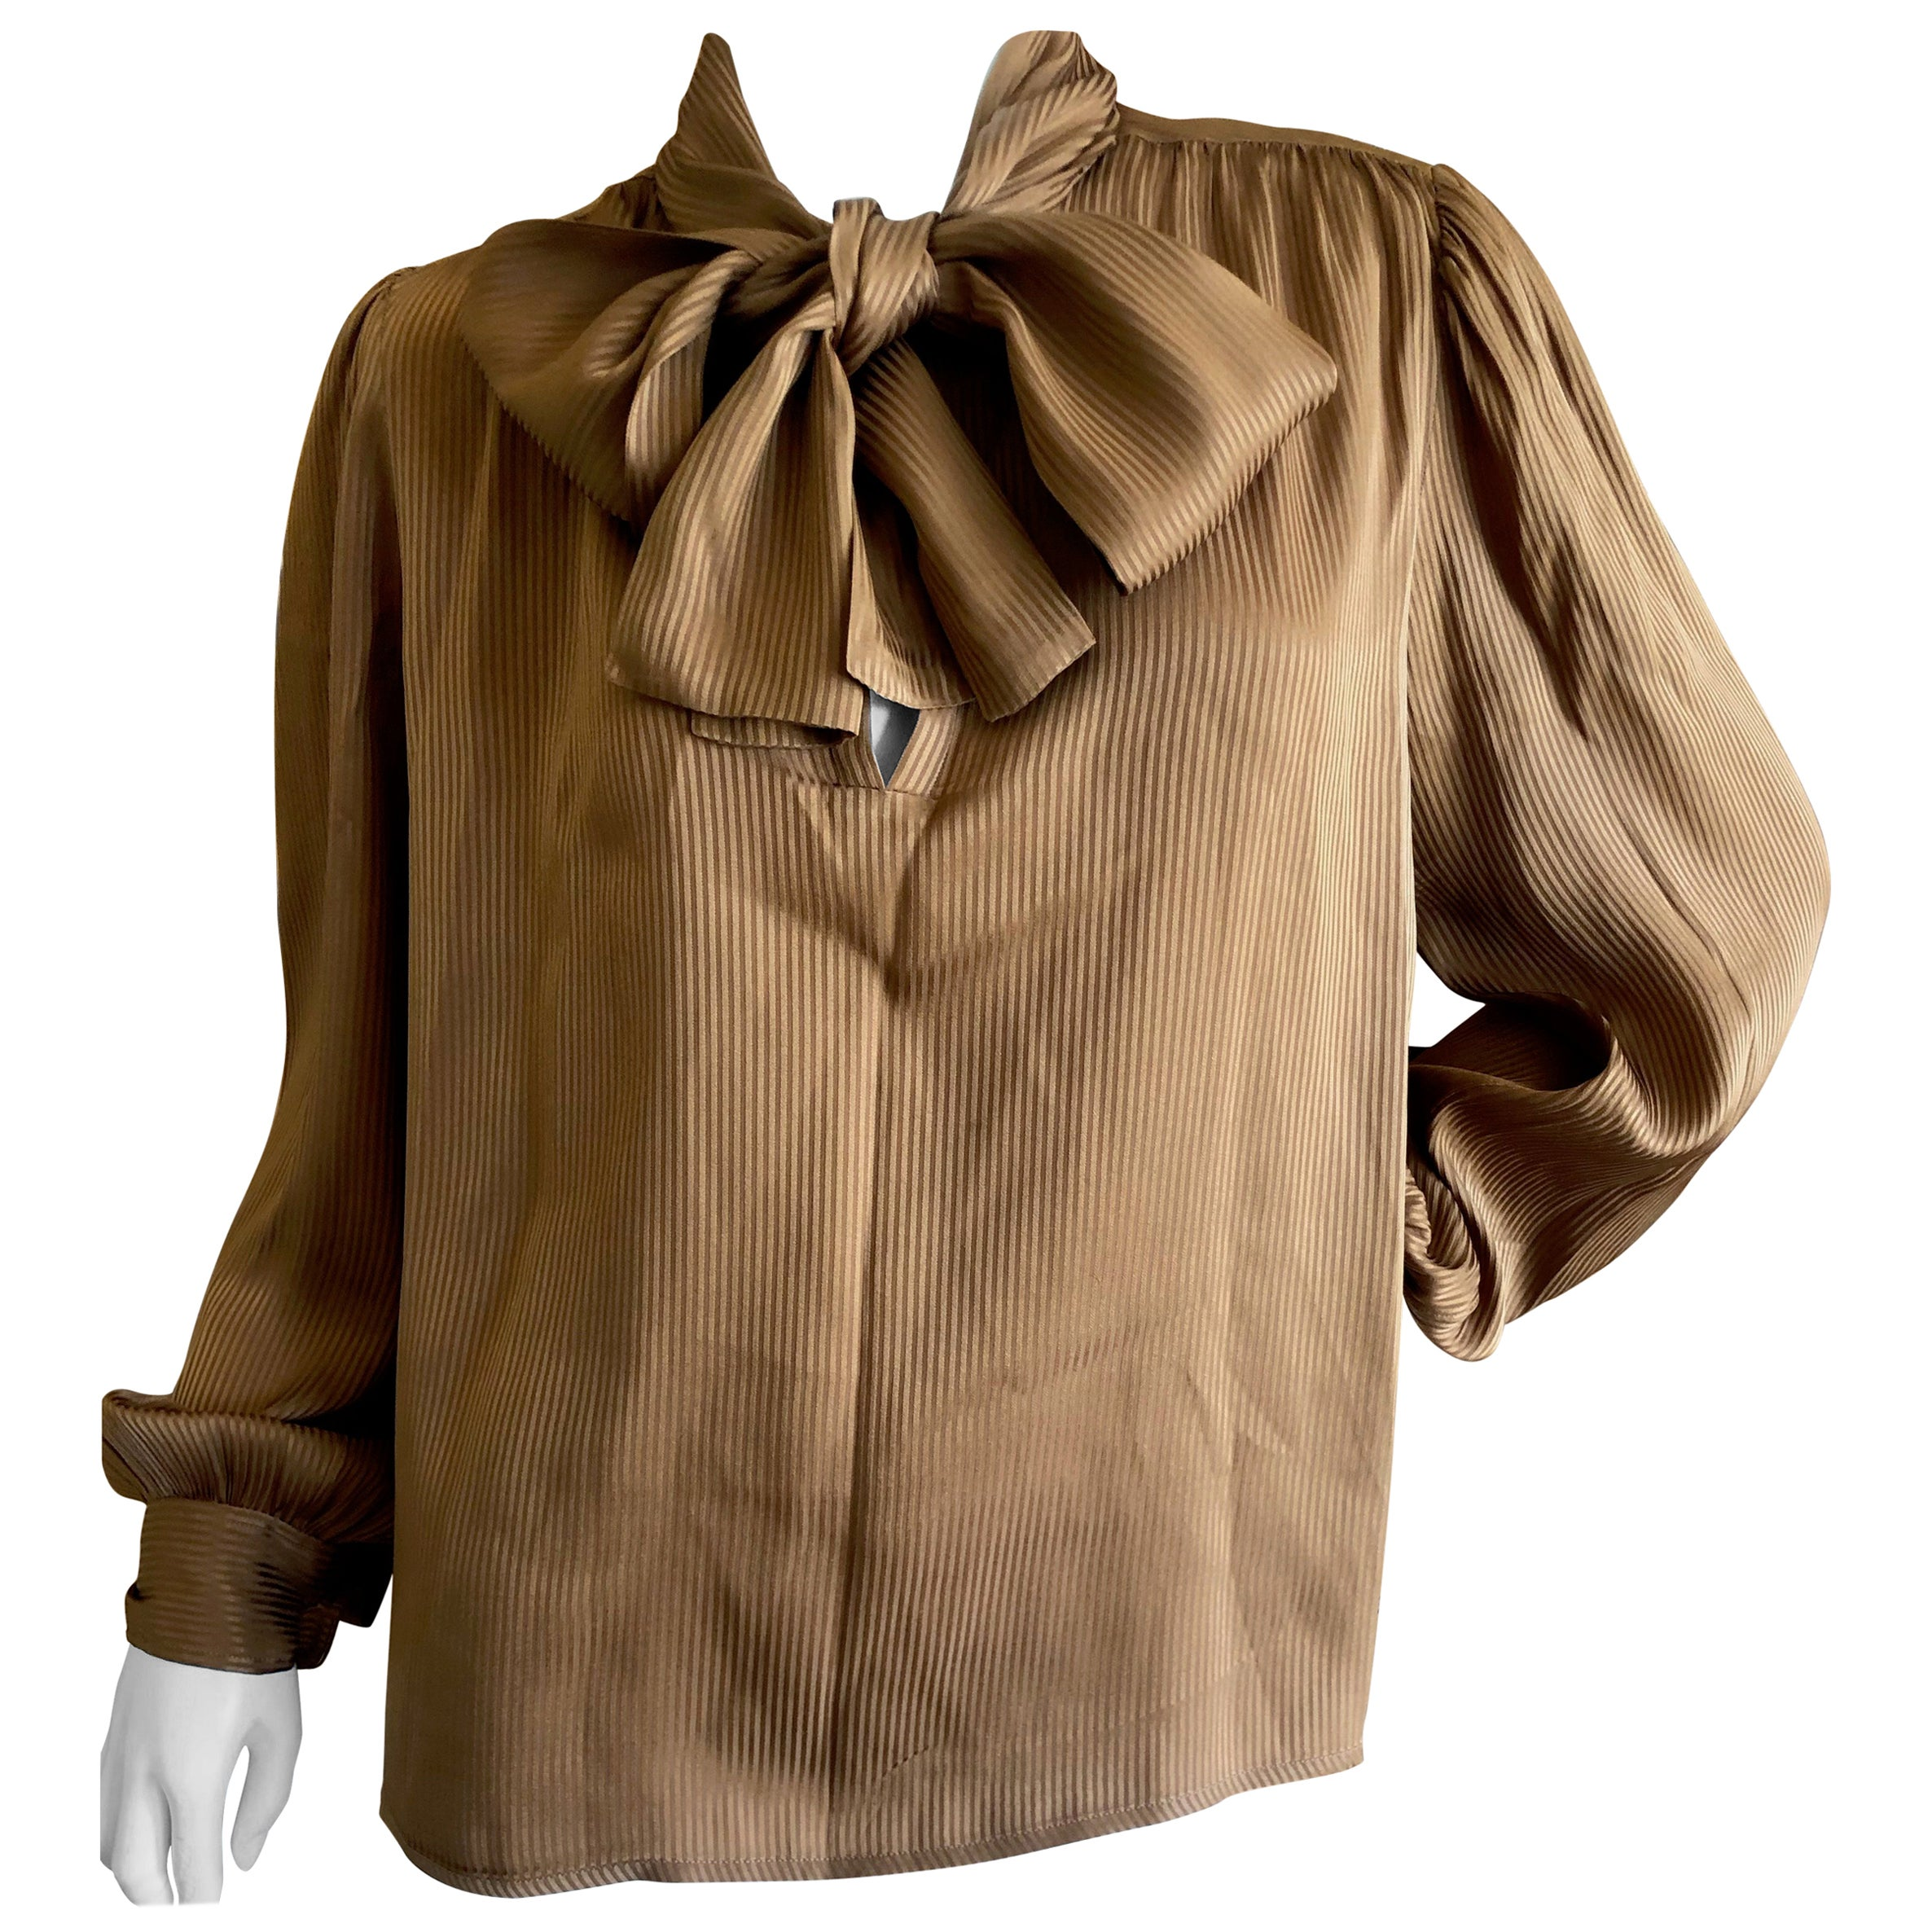 a3d90dcac240fe Yves Saint Laurent 70's Rive Gauche Pin Tuck Silk Keyhole Blouse w Pussy  Bow For Sale at 1stdibs